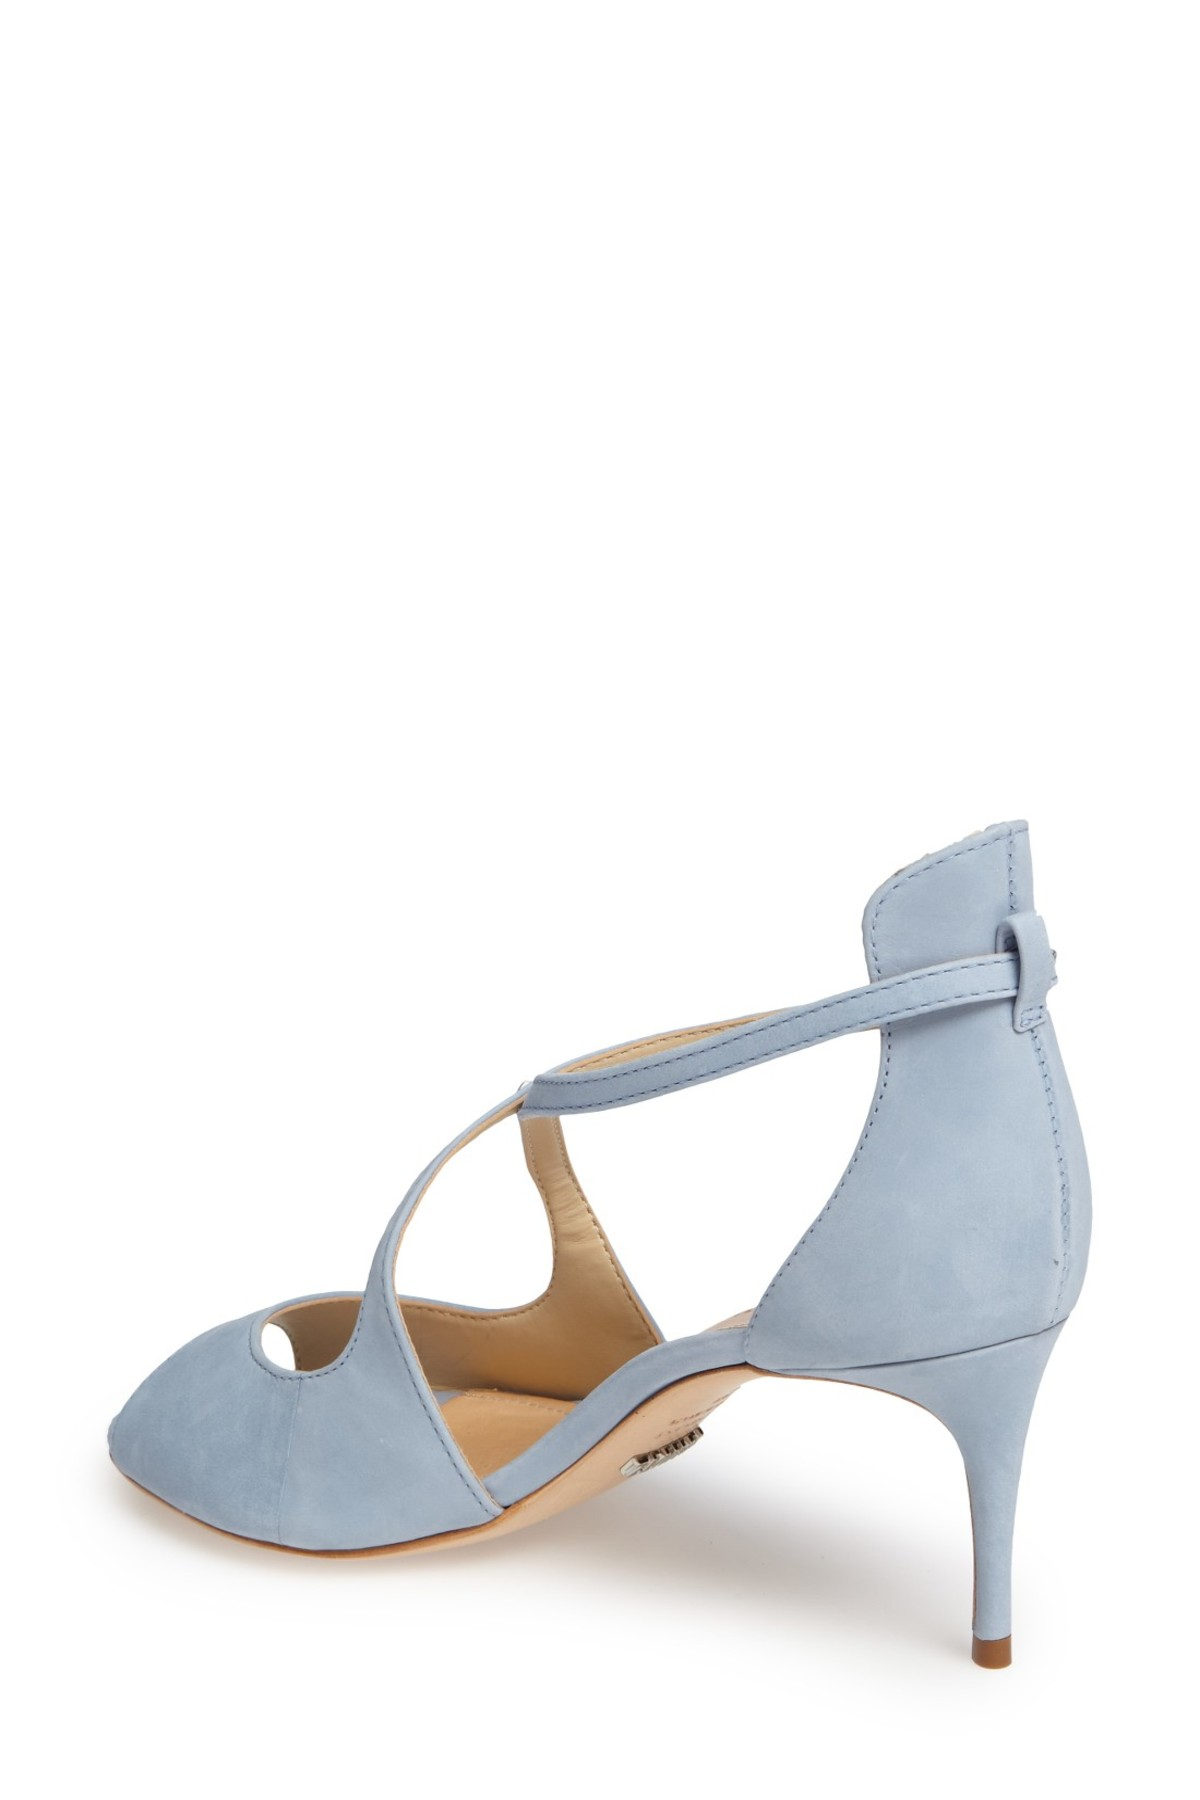 bf6468dcc64 Schutz Womens Zach Leather Peep Toe Special Occasion Slingback Sandals